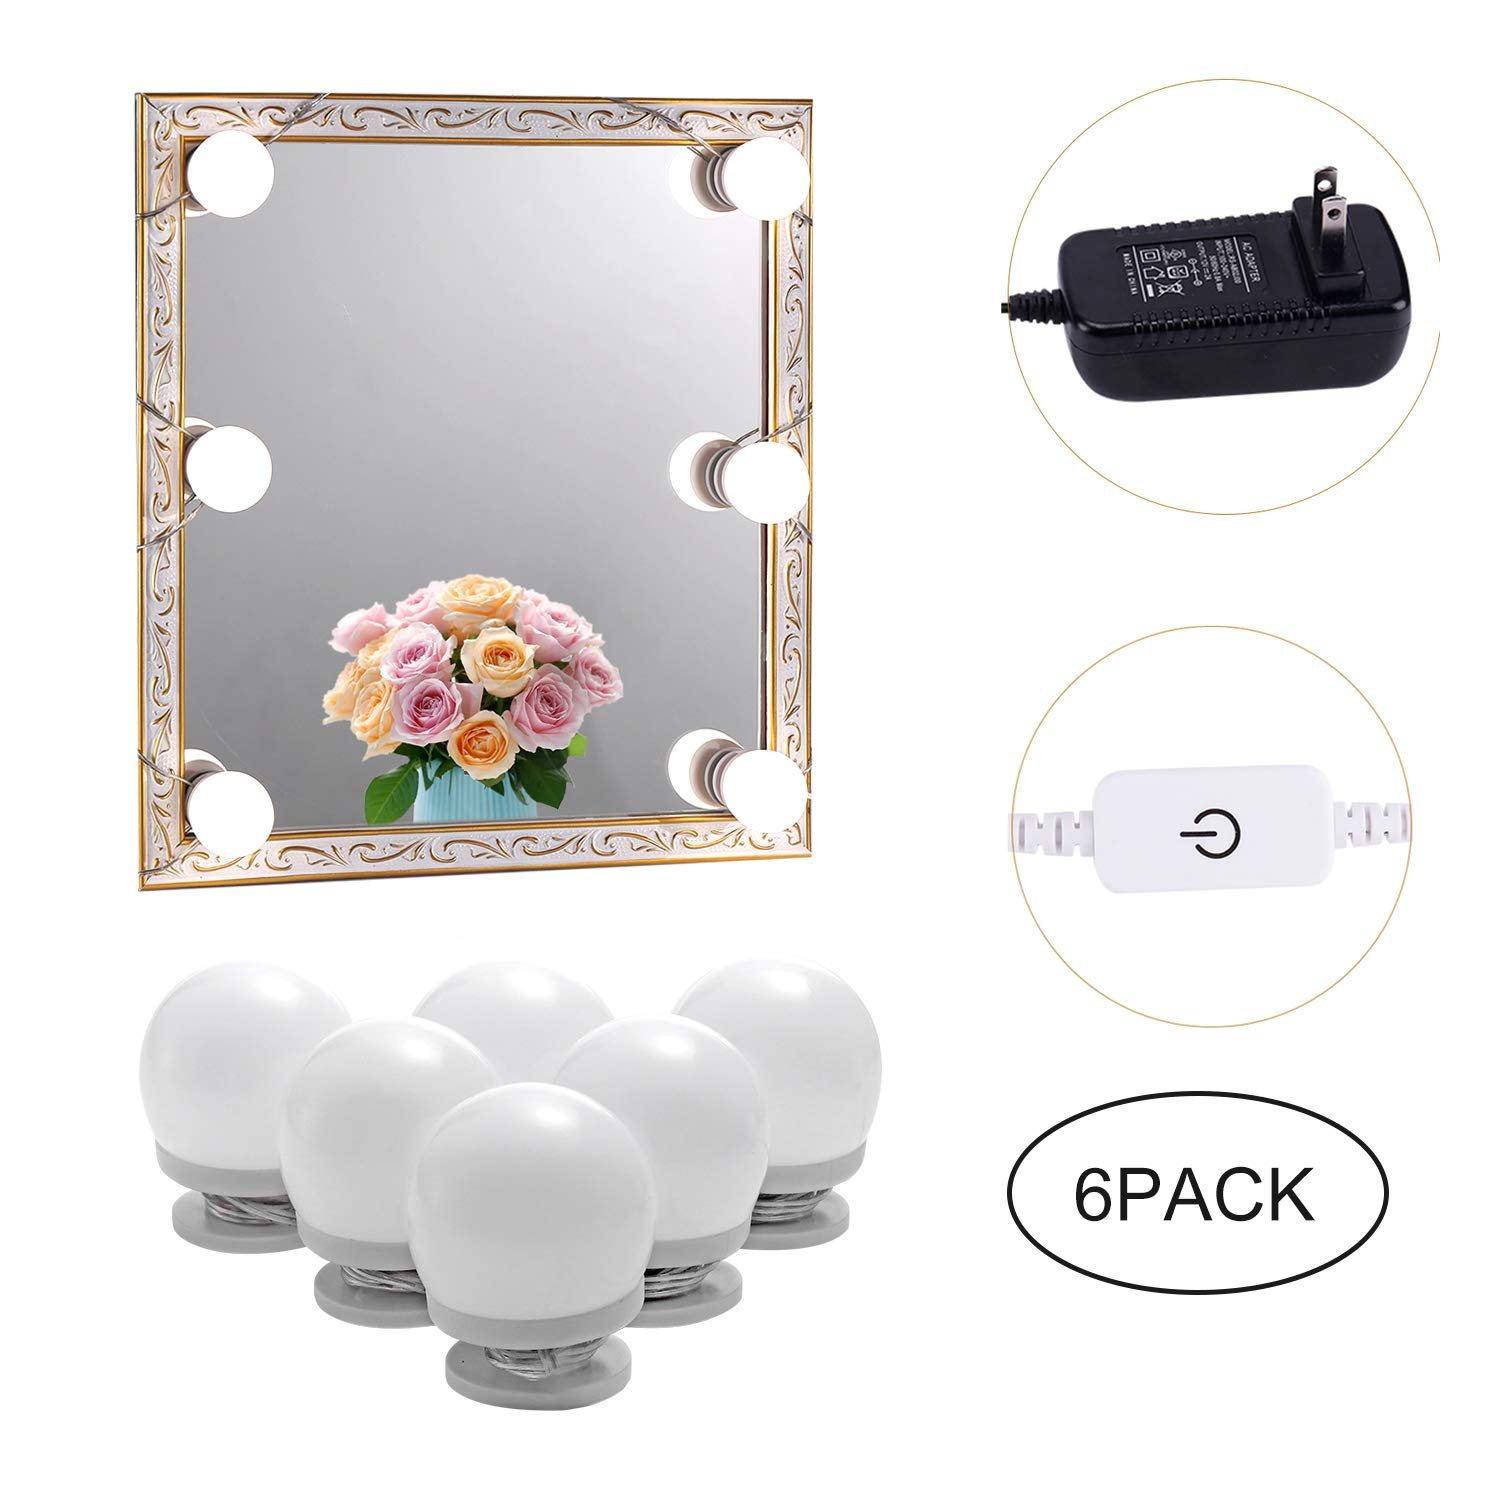 AIBOO Hollywood LED Vanity Mirror Lights Kit for Girls Makeup Dressing Table Lights,6 Natural Light Bulbs Stick on with Dimmer and Plug in Adapter(Mirror Not Included)